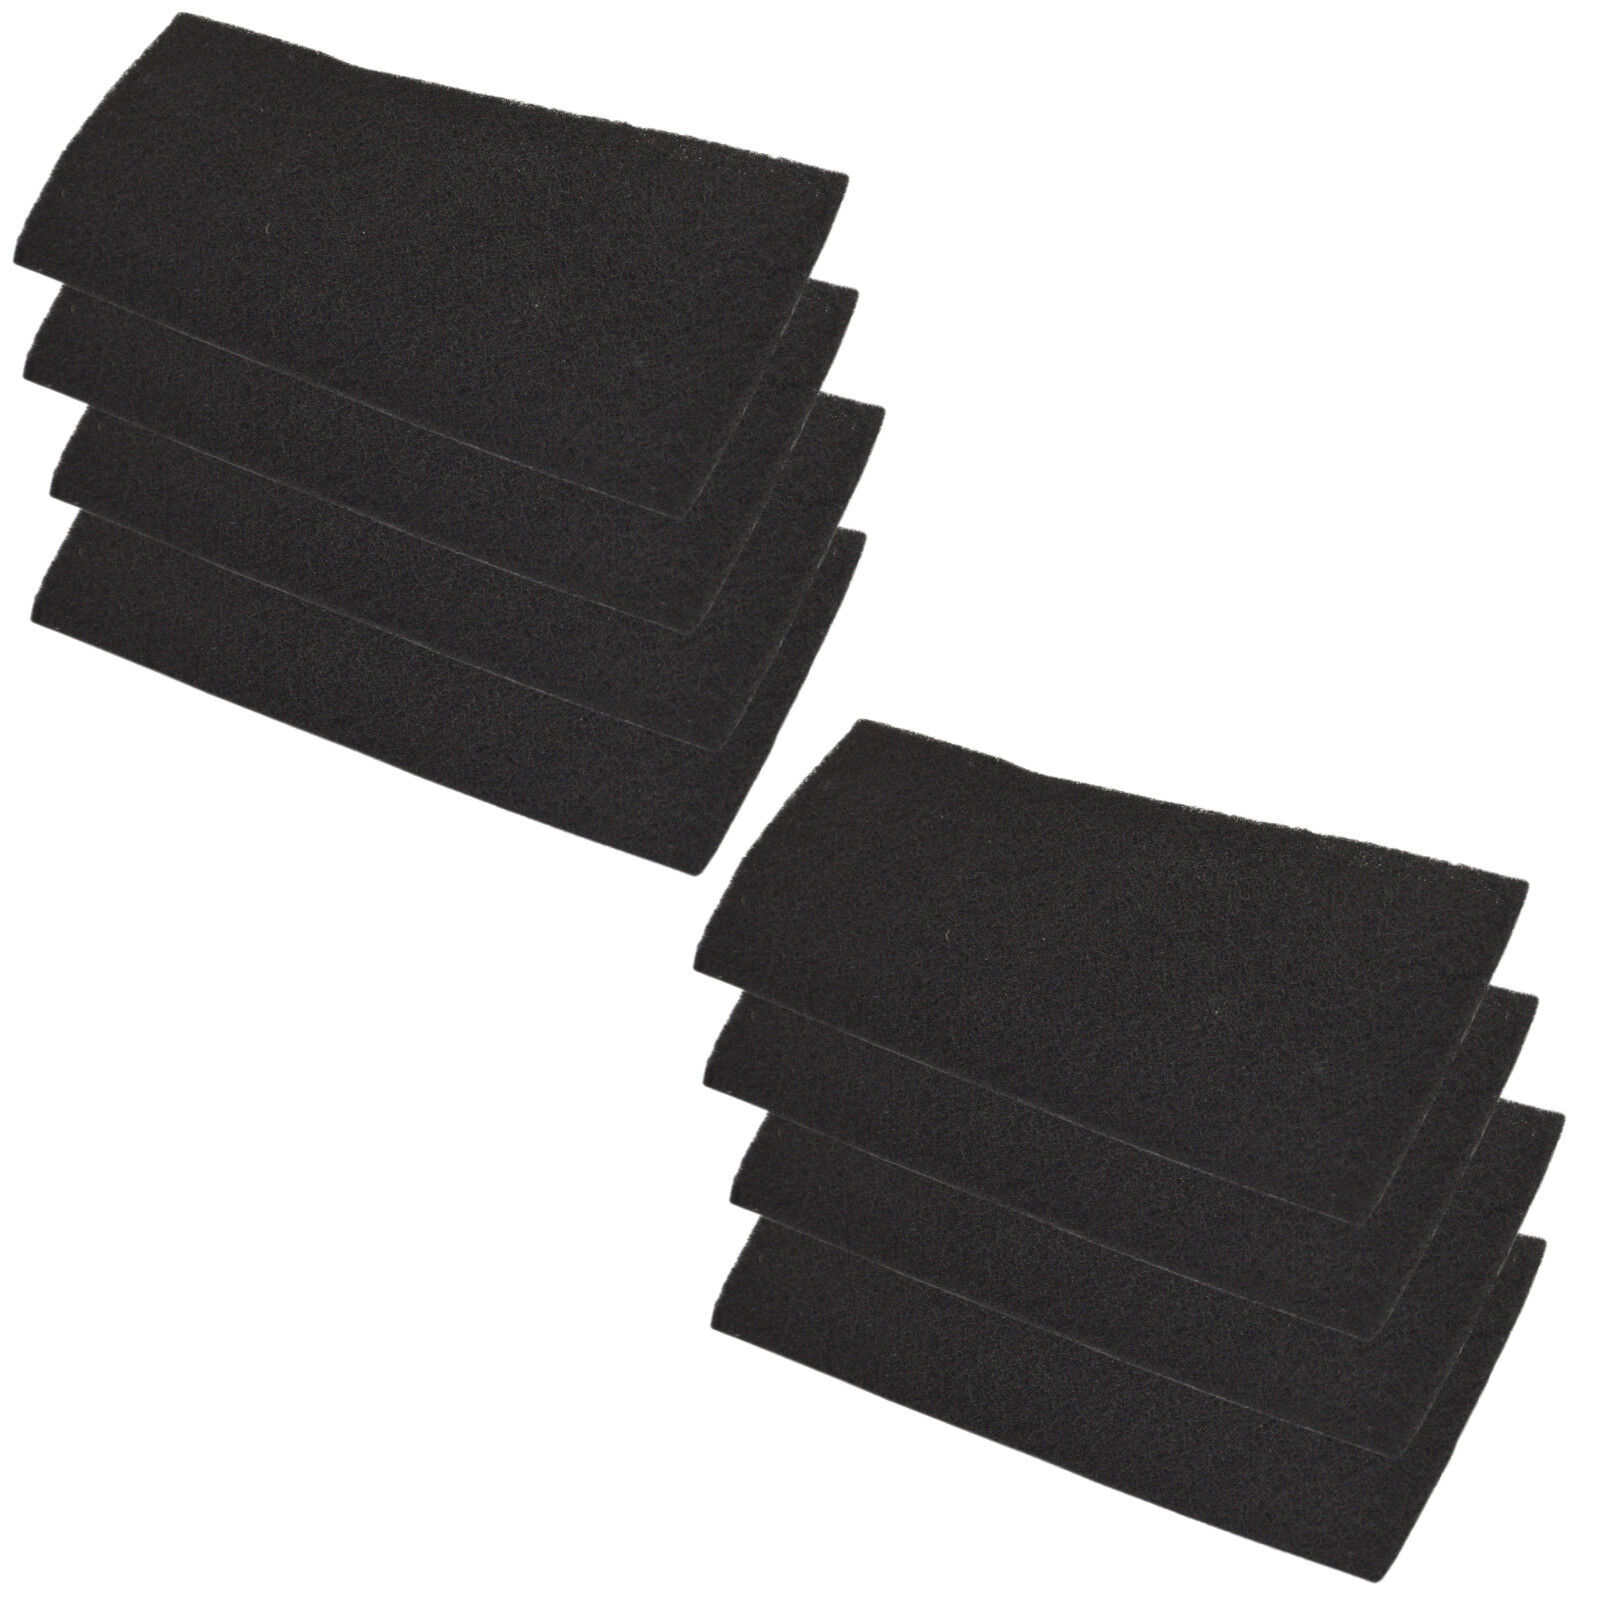 8-Pack Carbon Filter for Holmes HAP Series Air Purifiers, BHOR31-1 Replacement